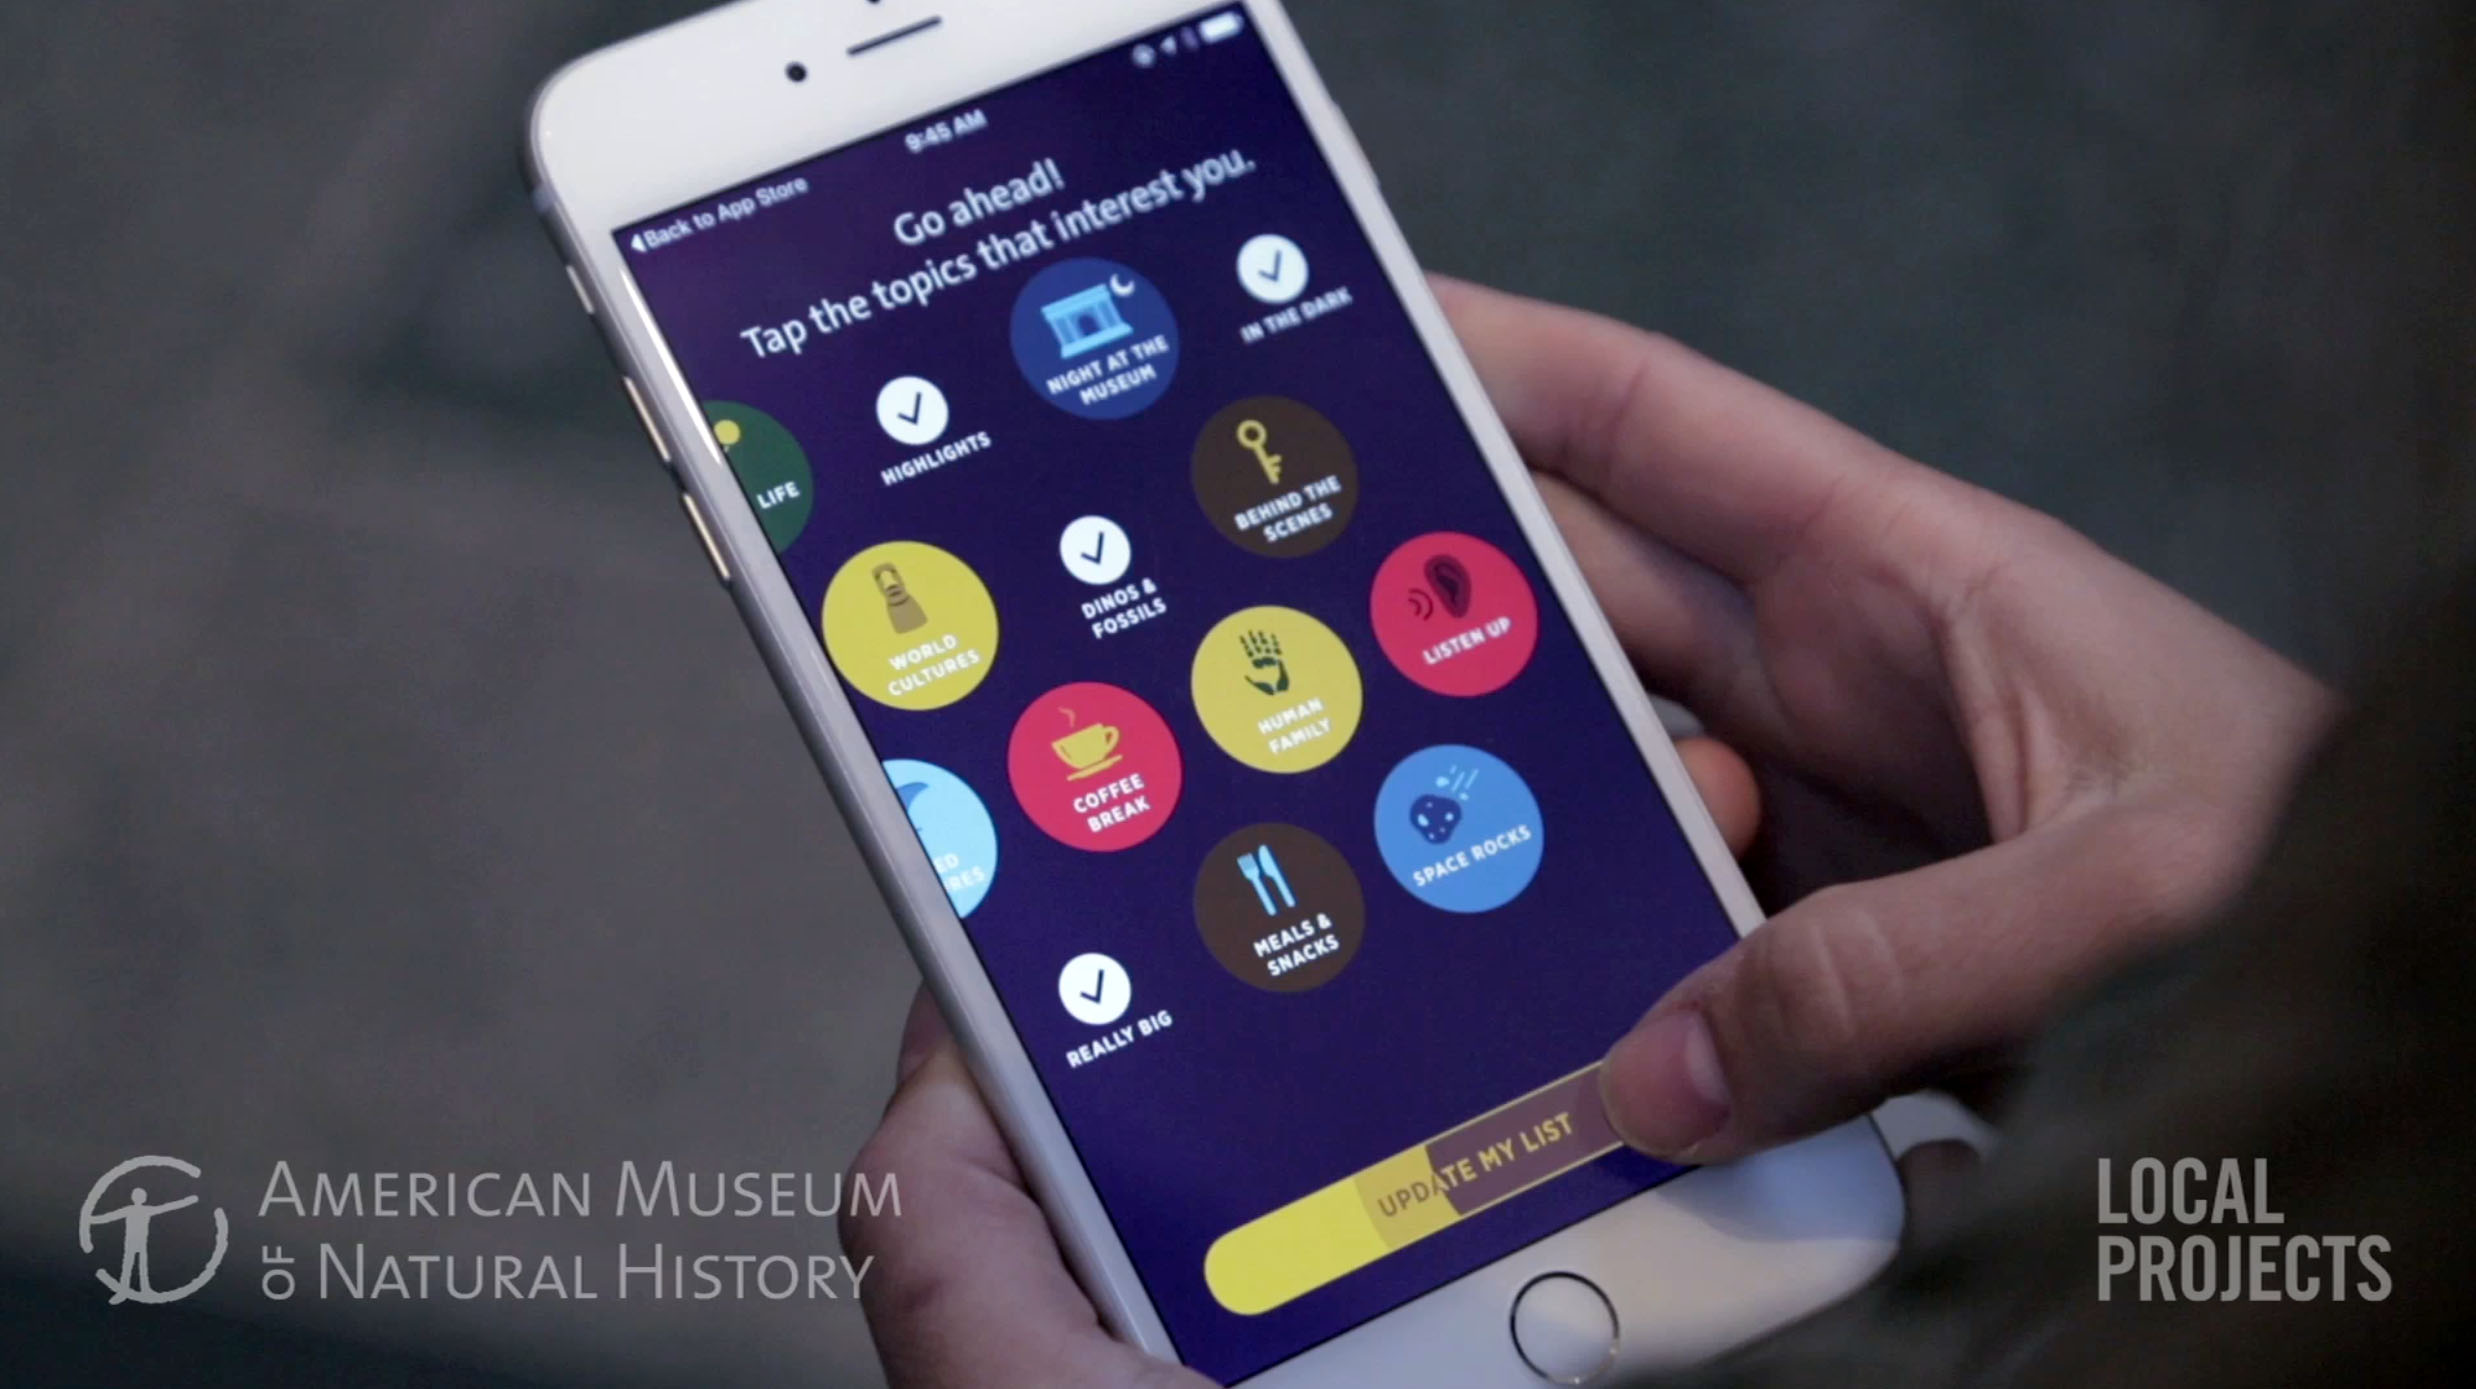 On-boarding experience for the museum app.